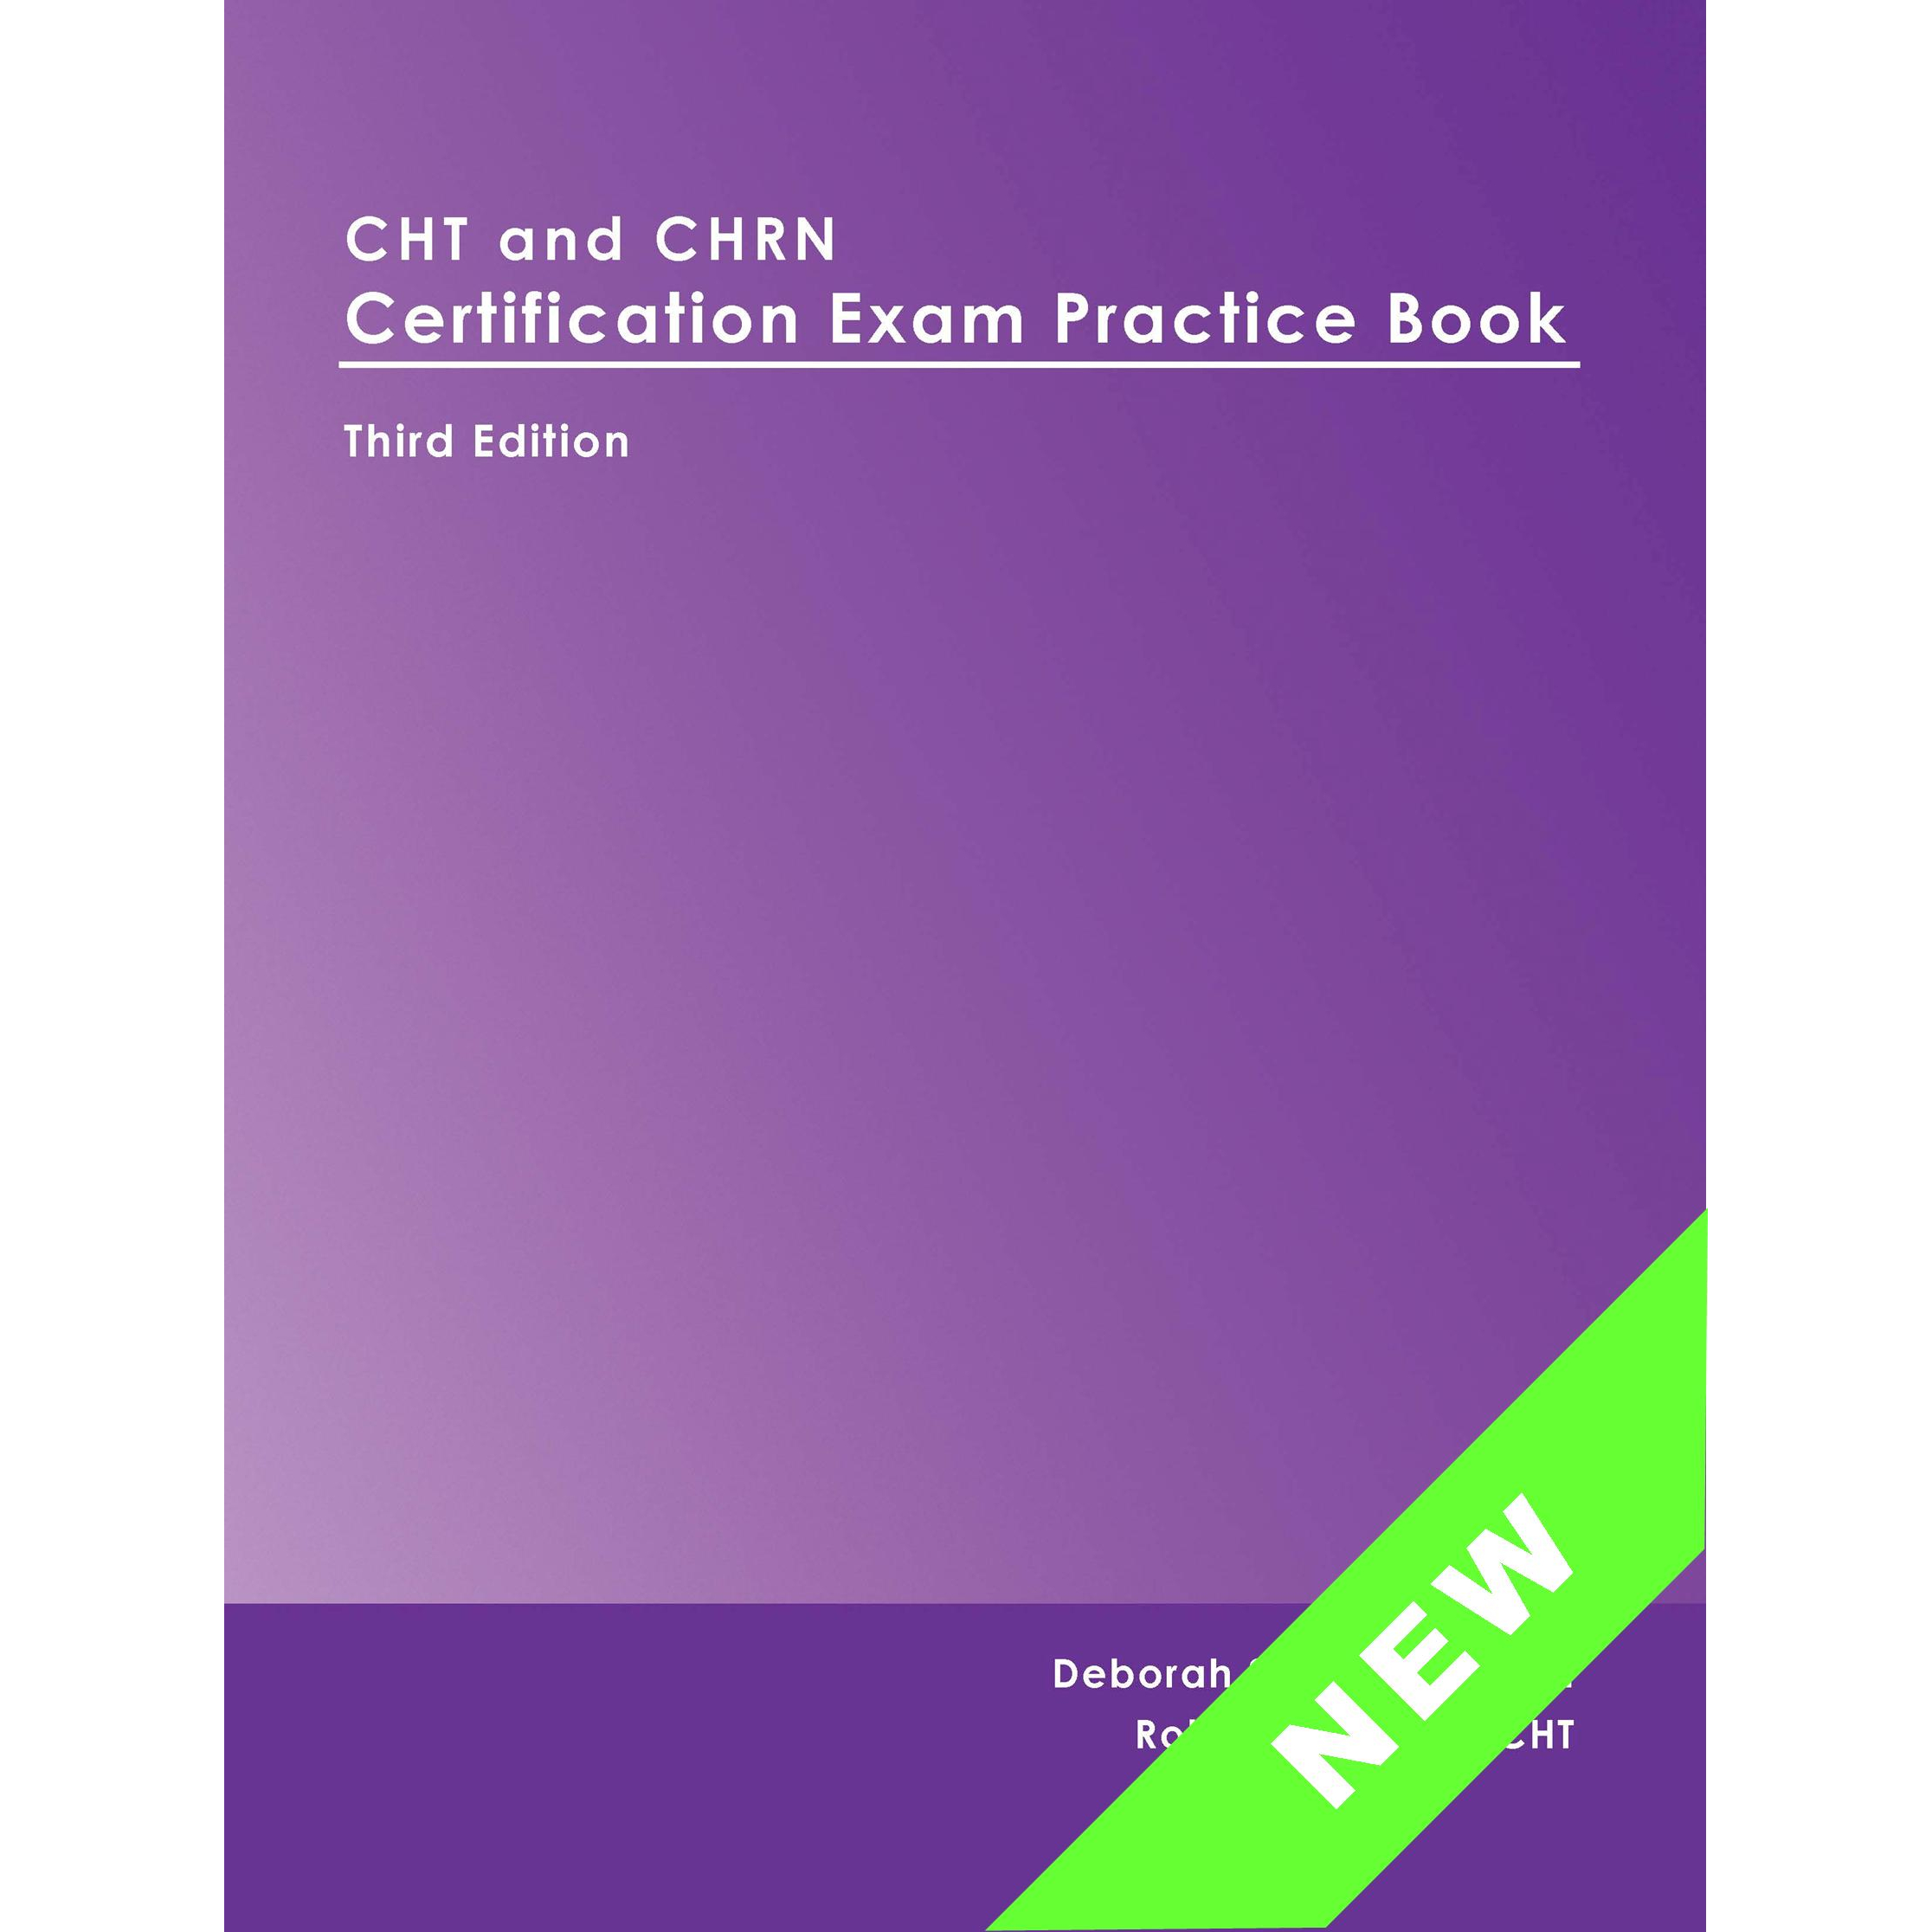 Cht And Chrn Certification Exam Practice Book 3rd Edition